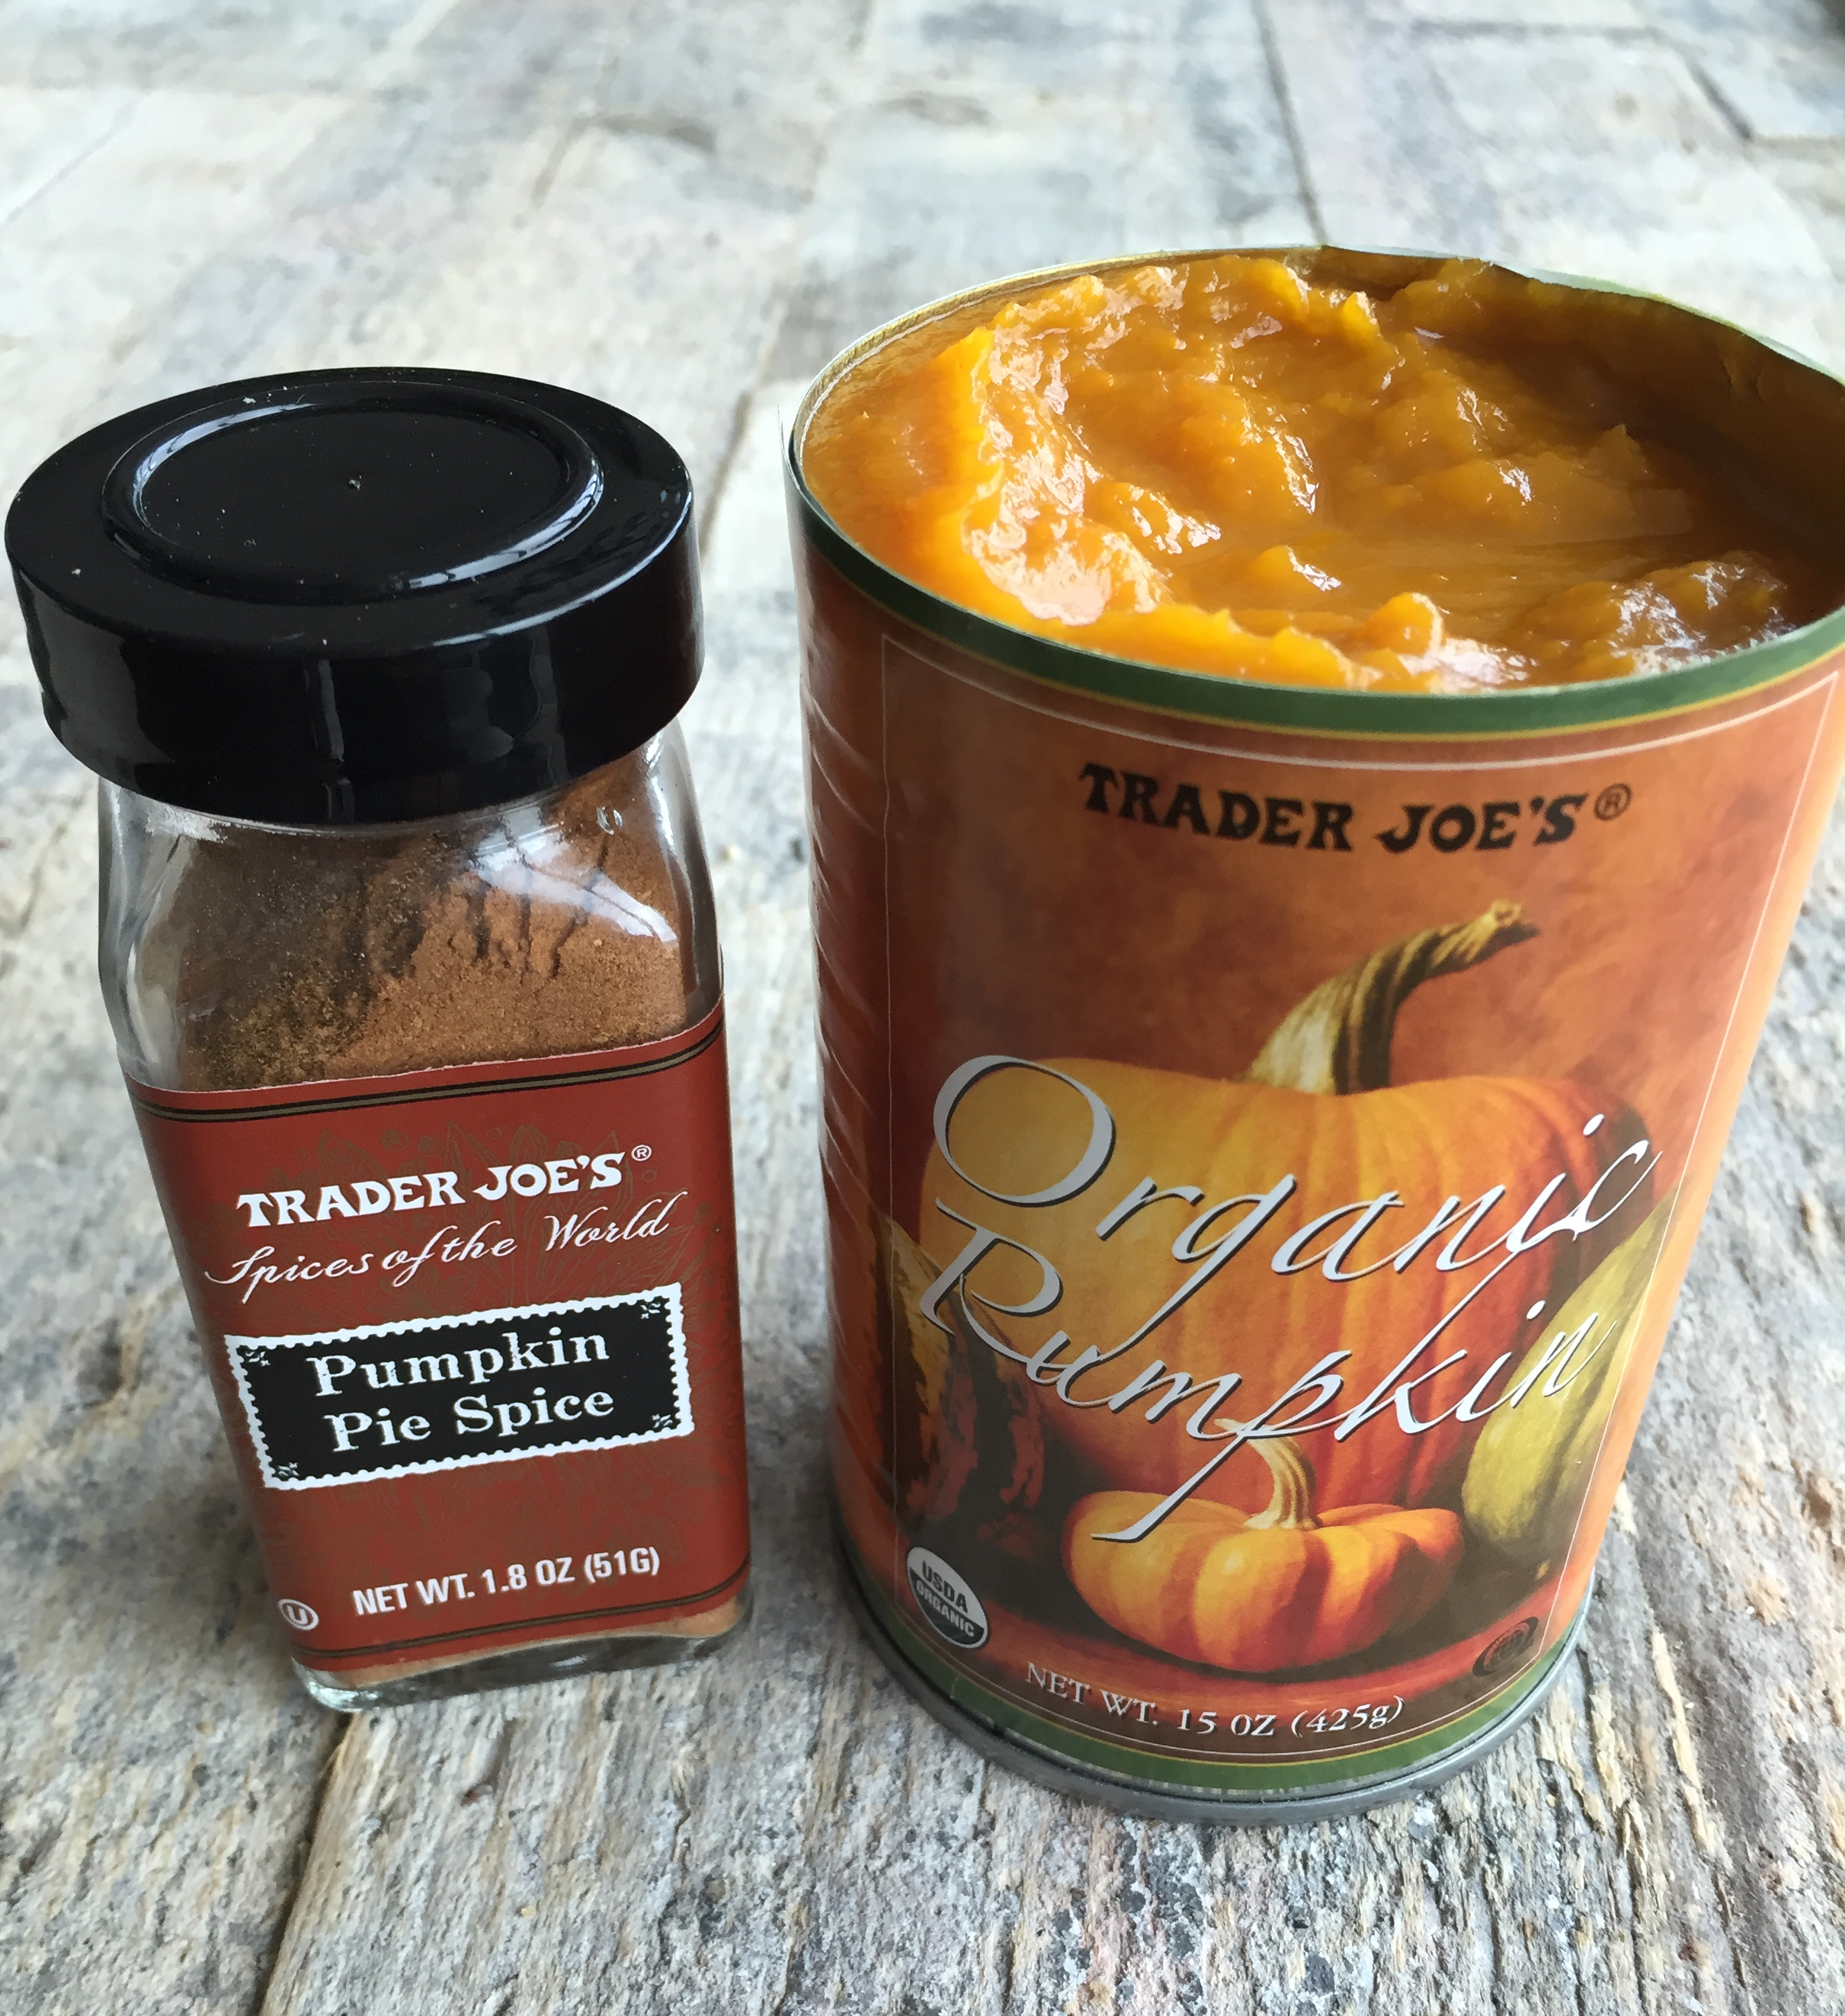 Canned pureed pumpkin and pumpkin pie spice make this recipe so simple & quick!